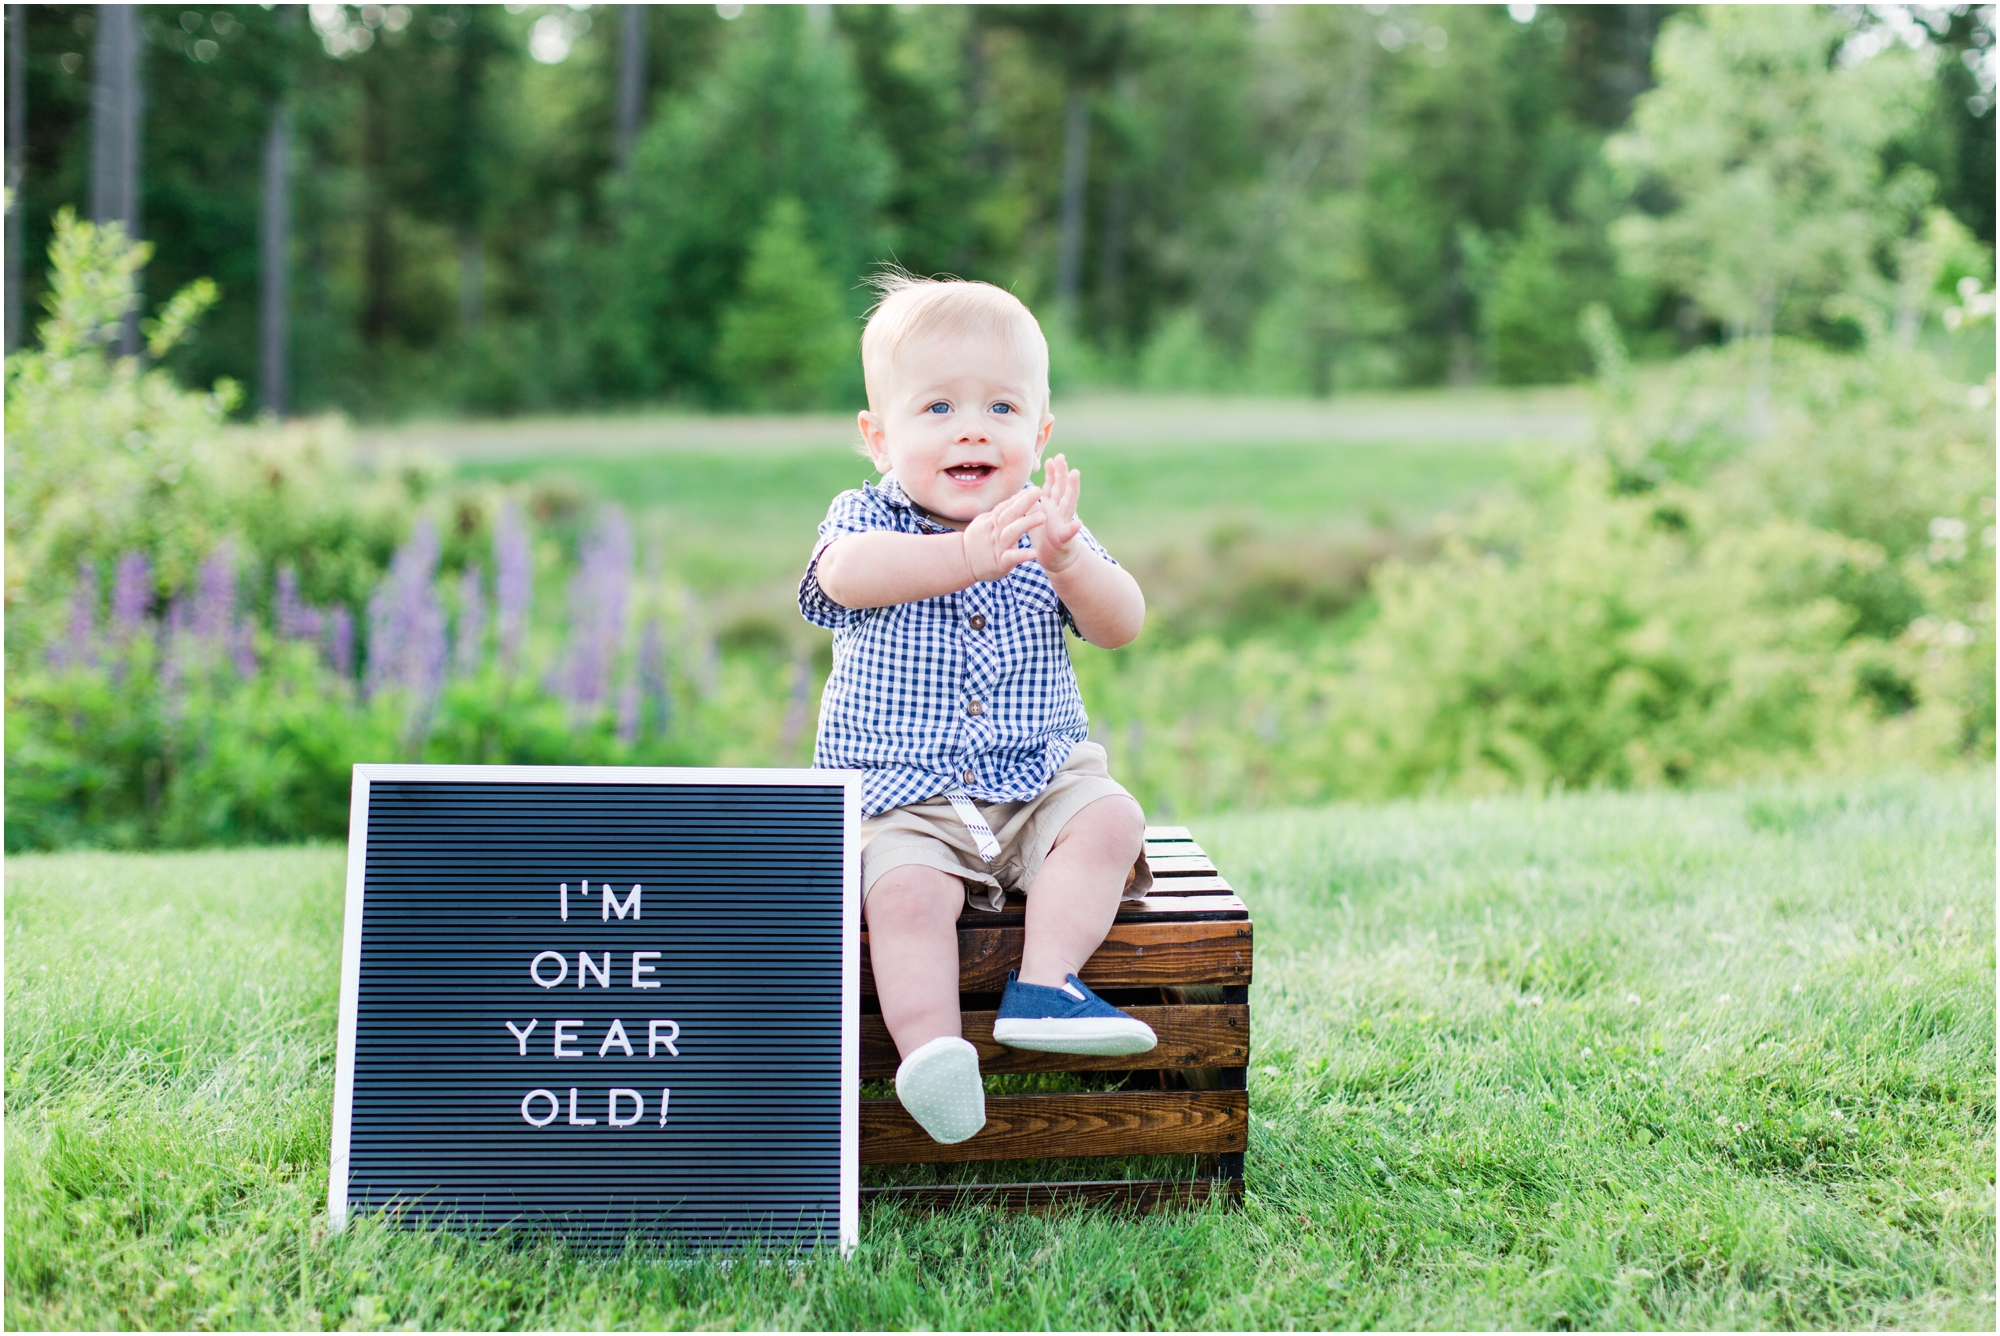 Family and one year old portraits by briana calderon photography based in the greater seattle